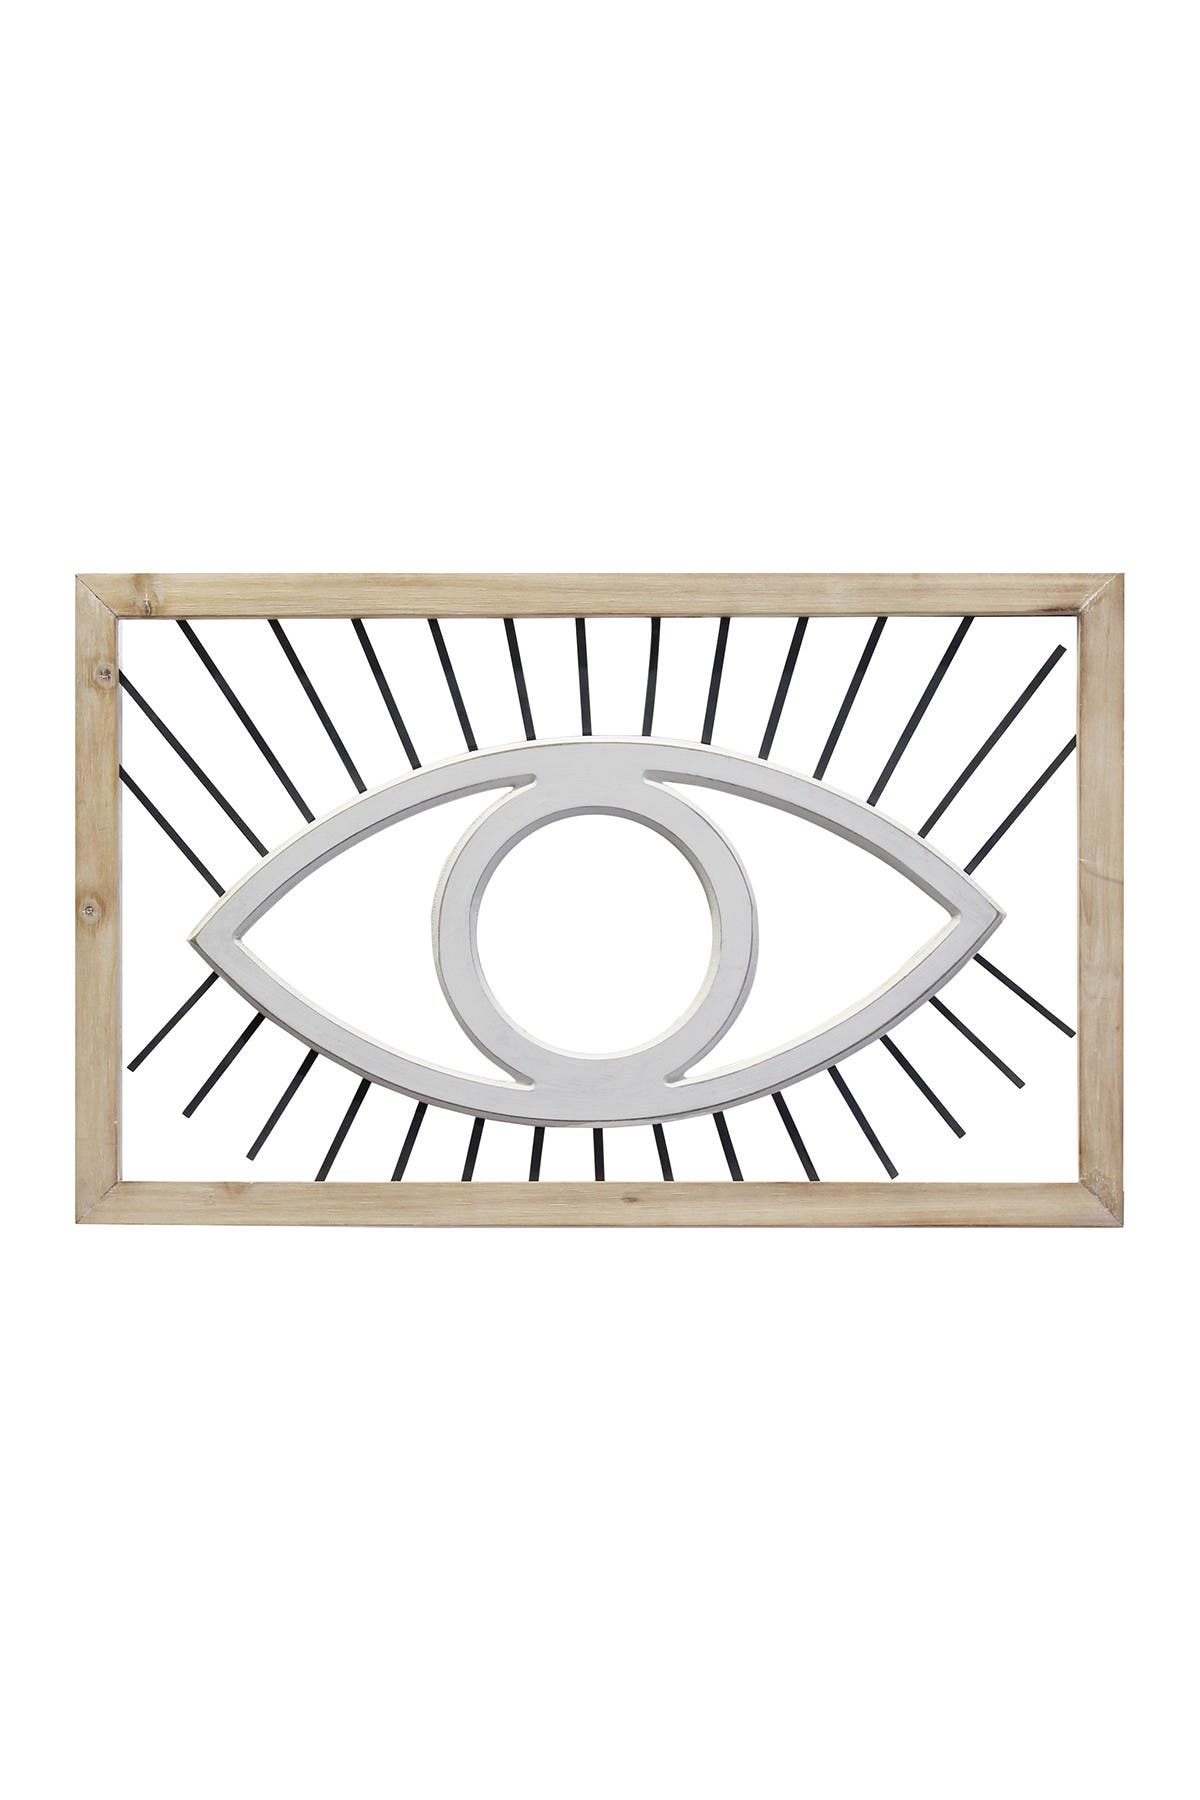 Image of Stratton Home Evil Eye Wall Decor